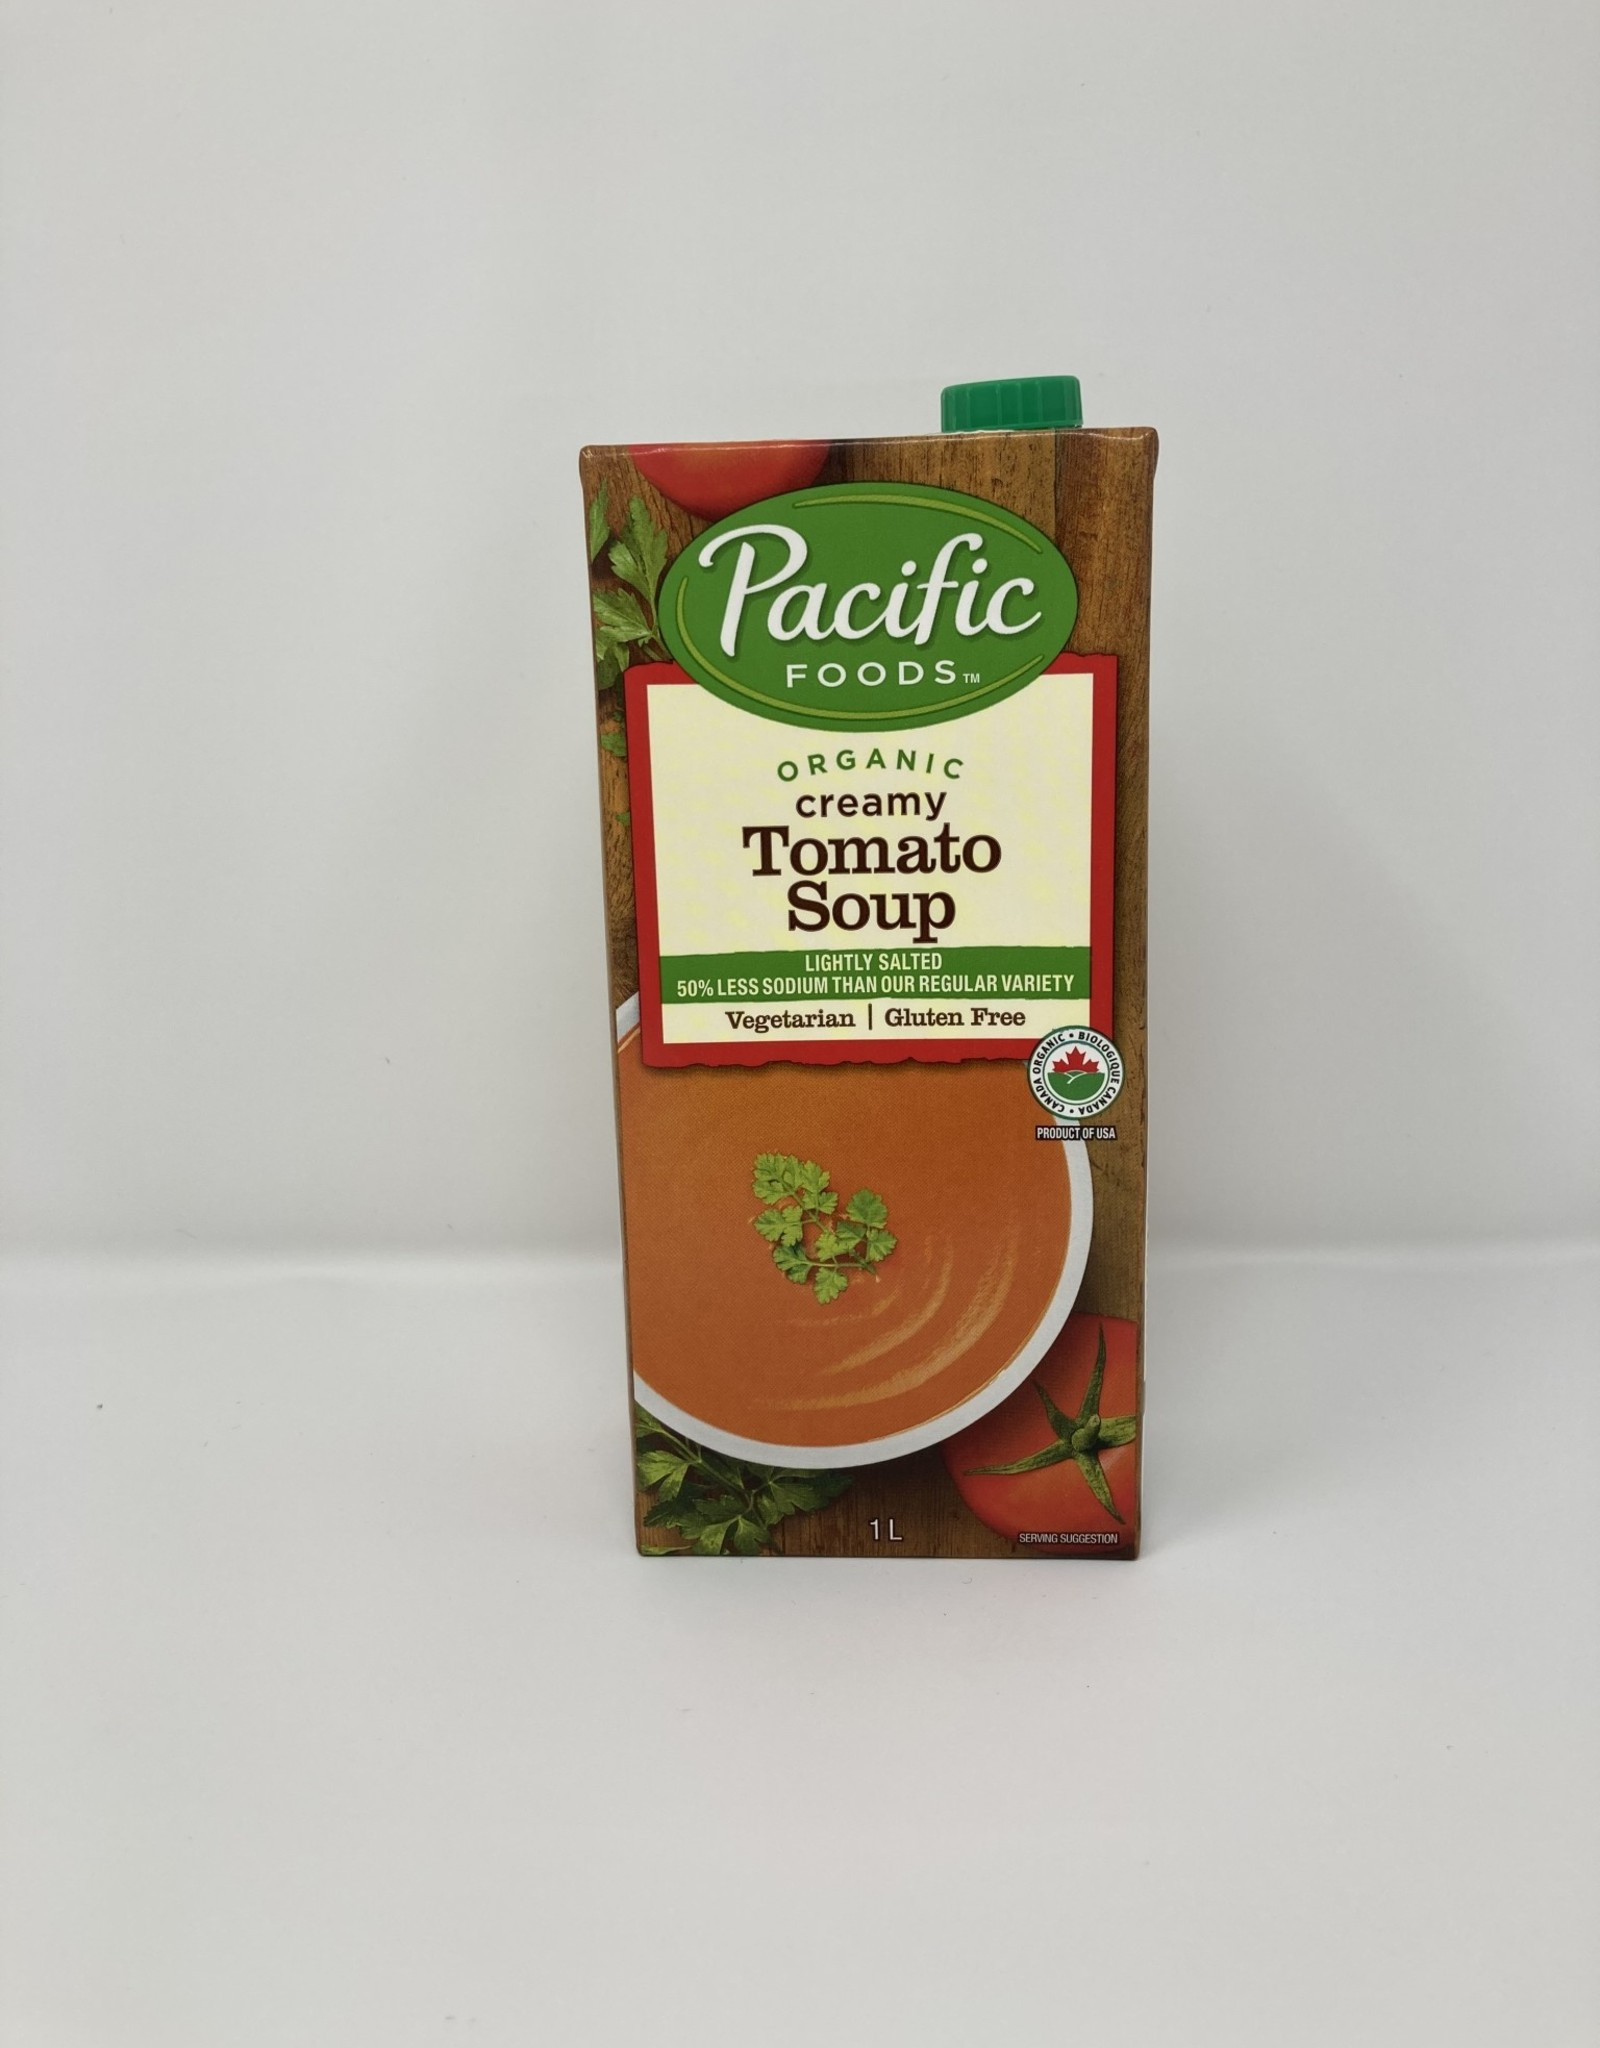 Pacific Foods Pacific Foods - Soup, Organic Low Sodium Creamy Tomato (1L)